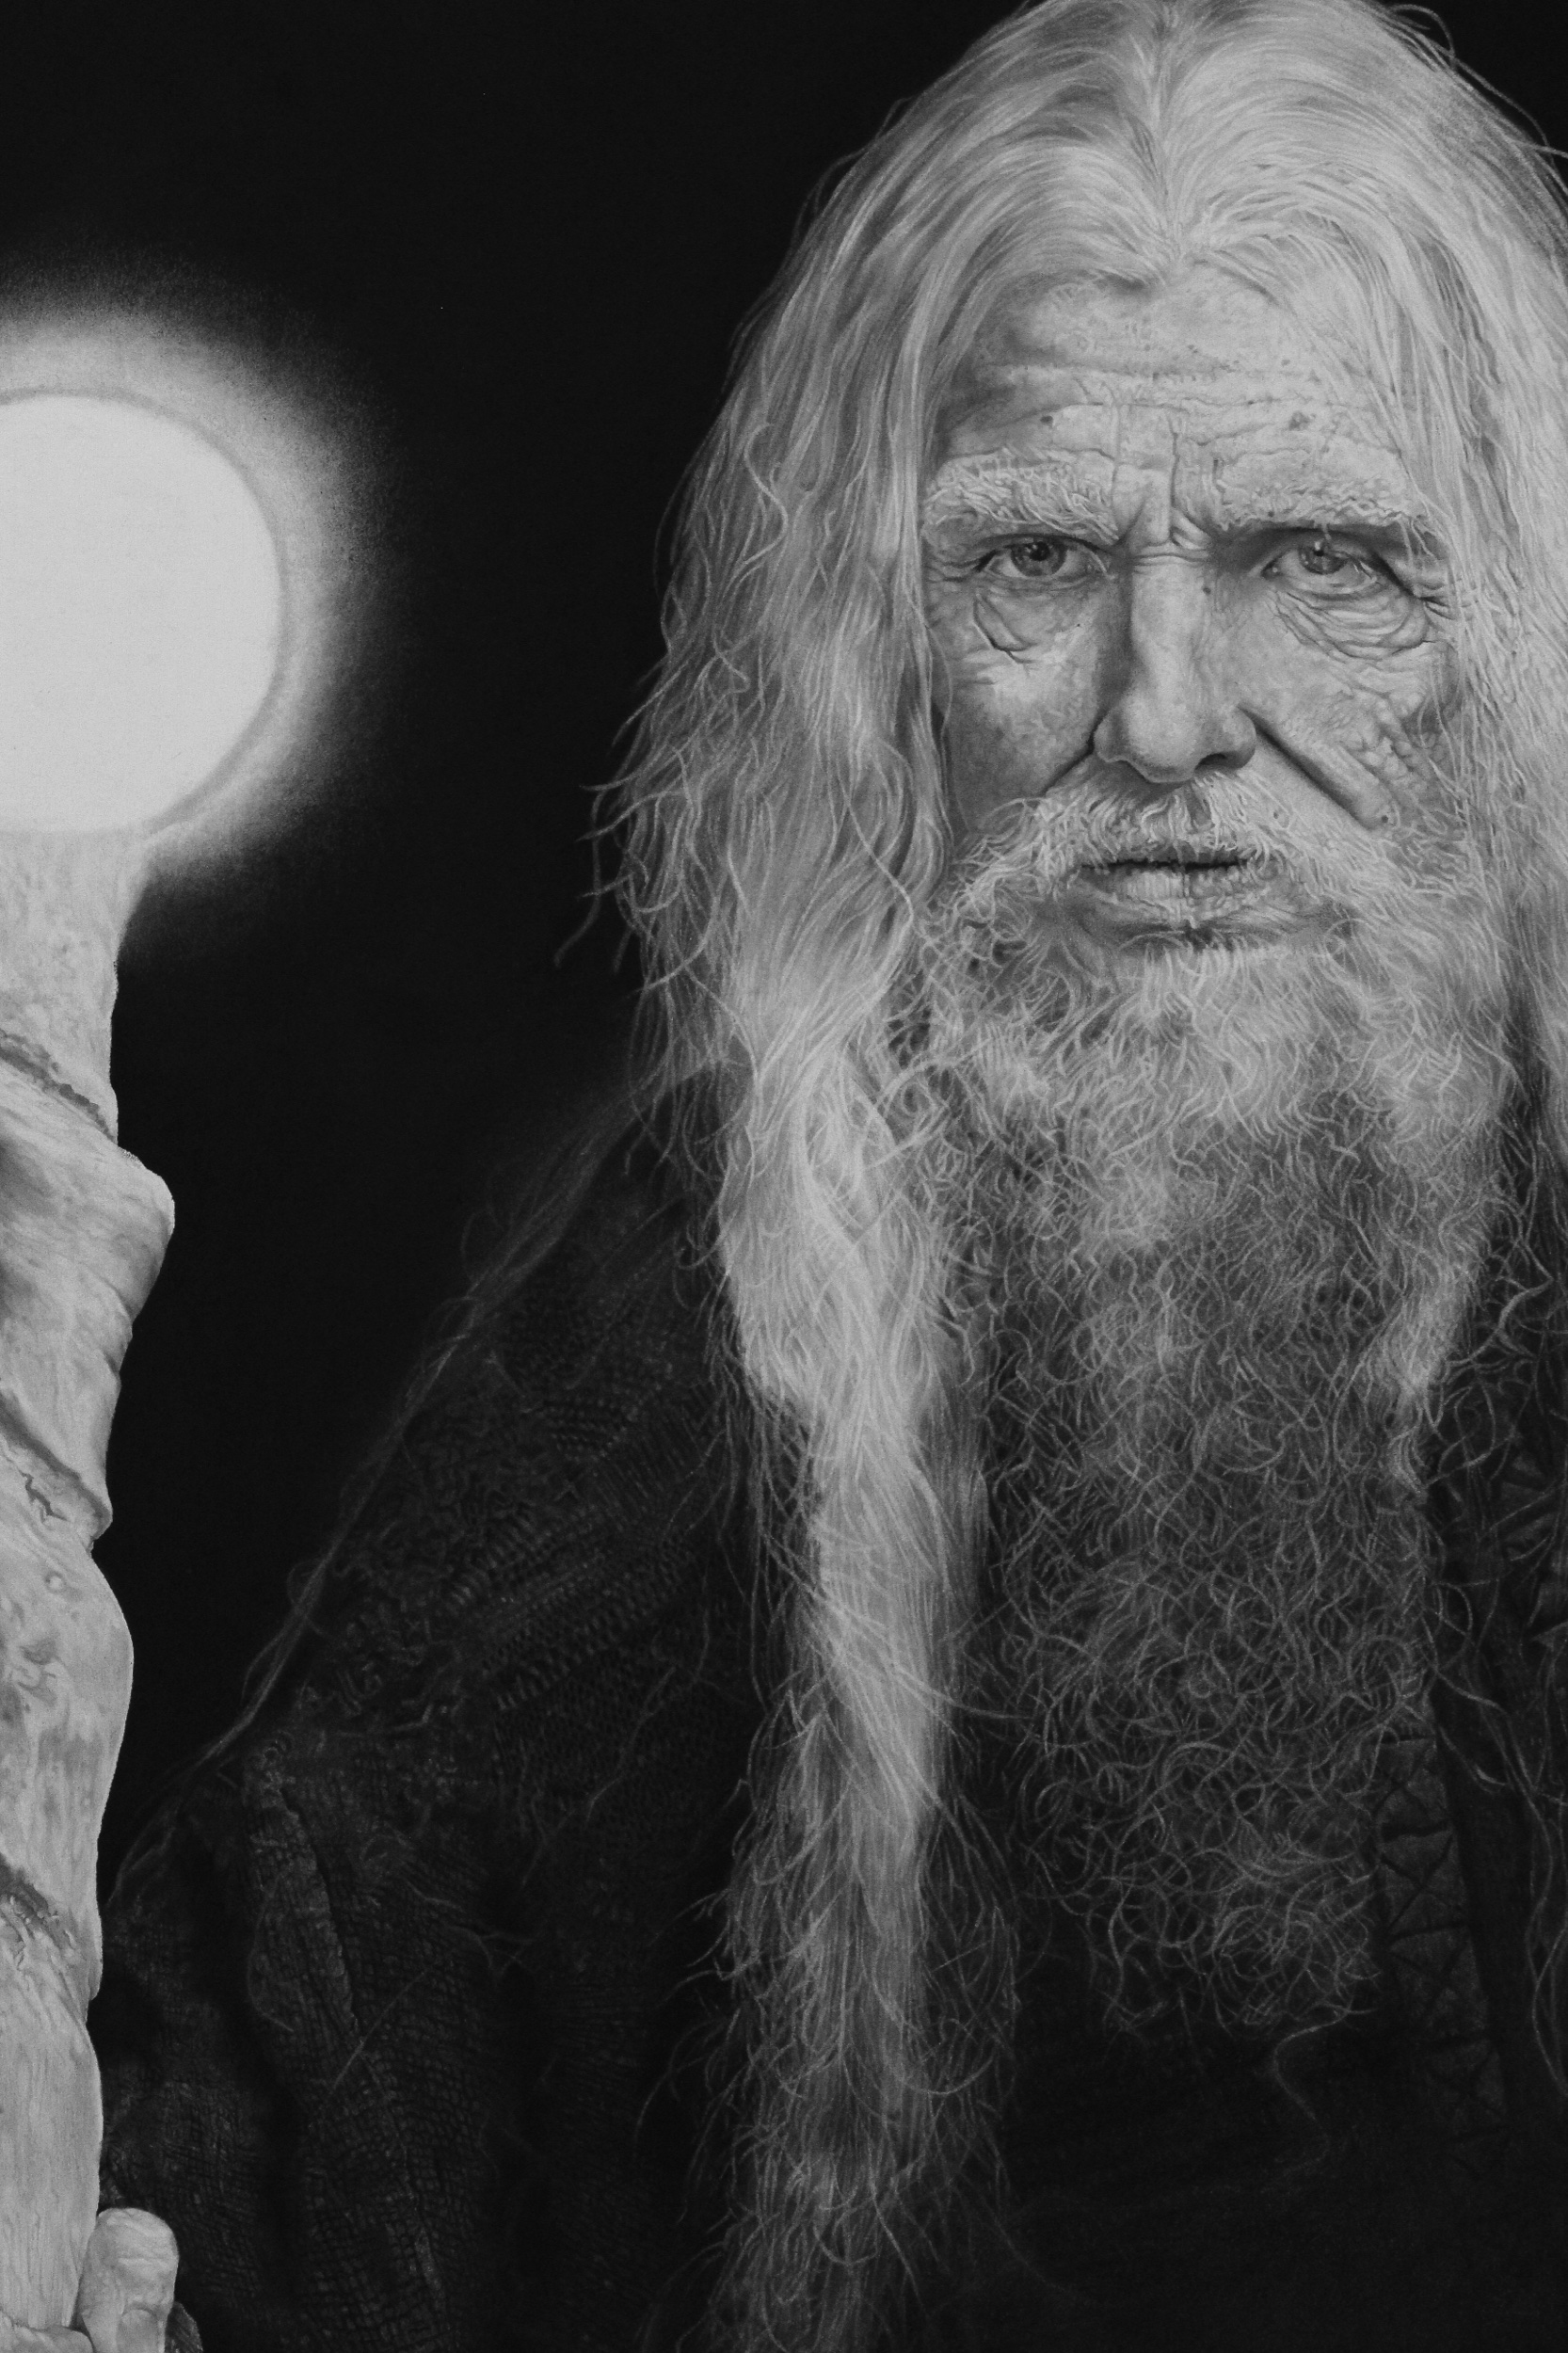 """The Hermit"" - 18"" x 24"". Graphite and Charcoal. (2019).Interpretation of the sacred tarot card ""The Hermit"". He visually and subjectively represents the lifelong journey of attaining inner wisdom, finding the light within through the acceptance of and immersion in periods of solitude and reflection."